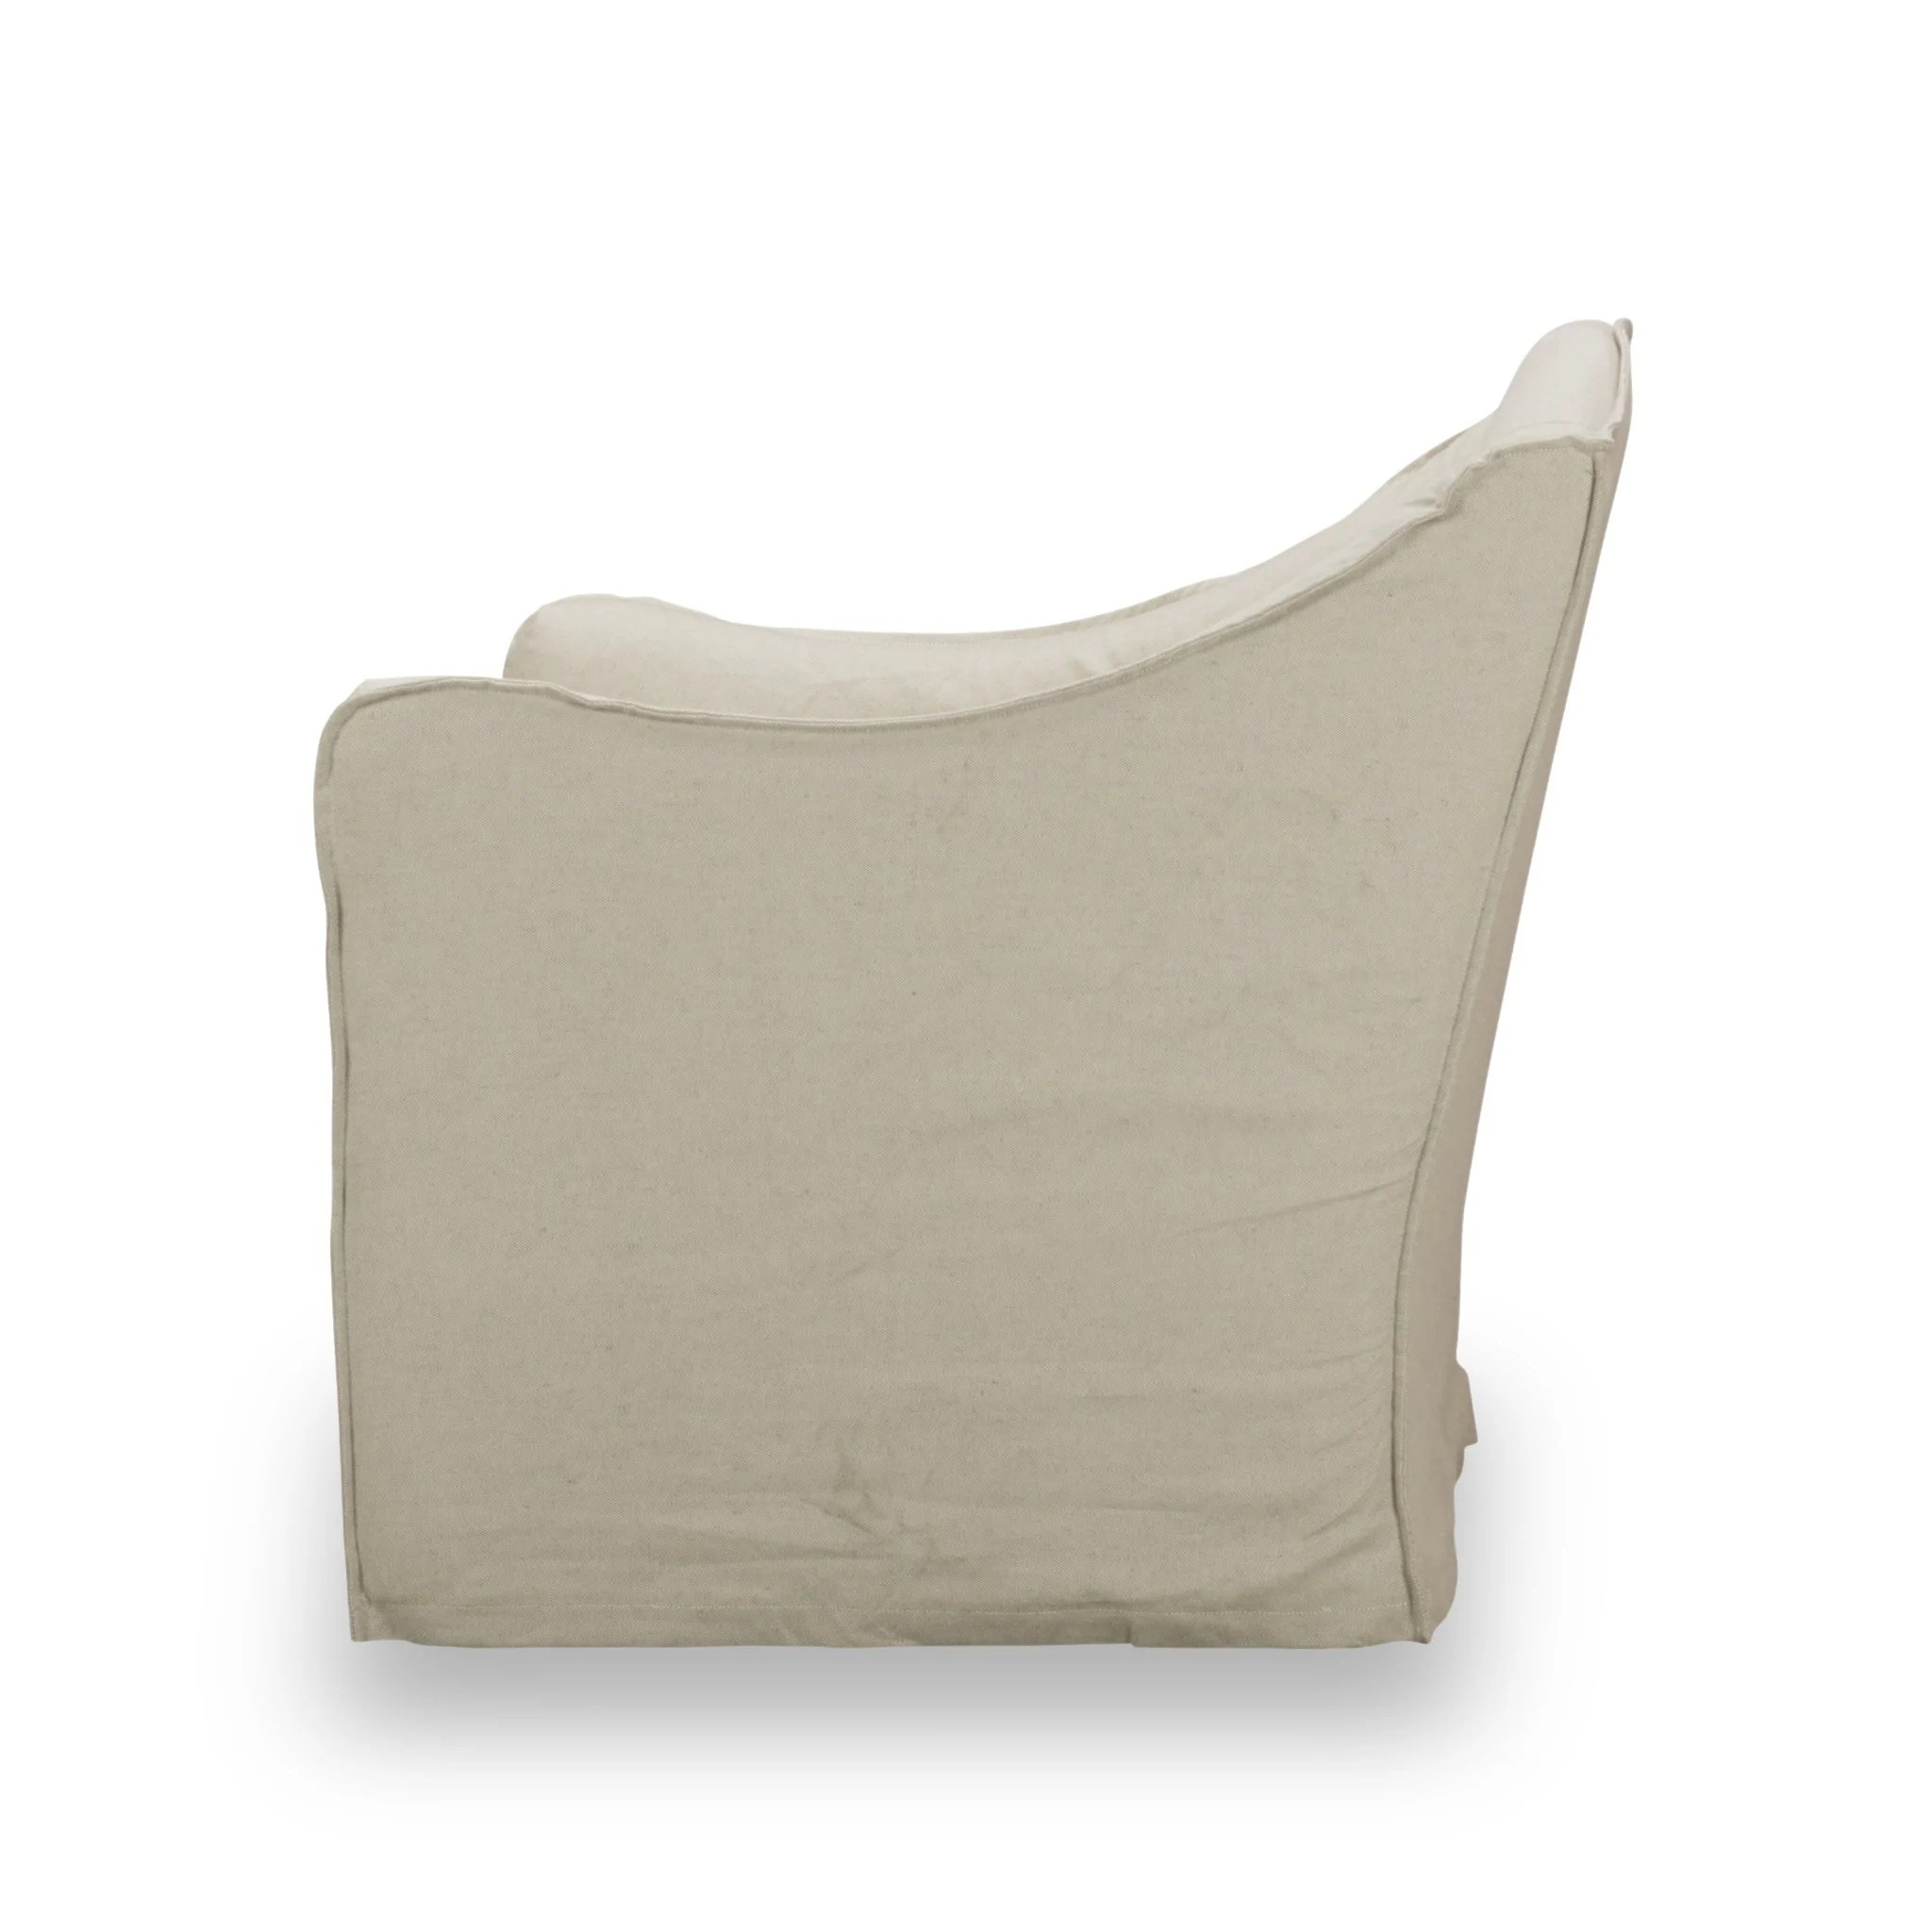 Slip Cover For Chair Keith Slip Covered Swivel Chair Sp02 Light Linen